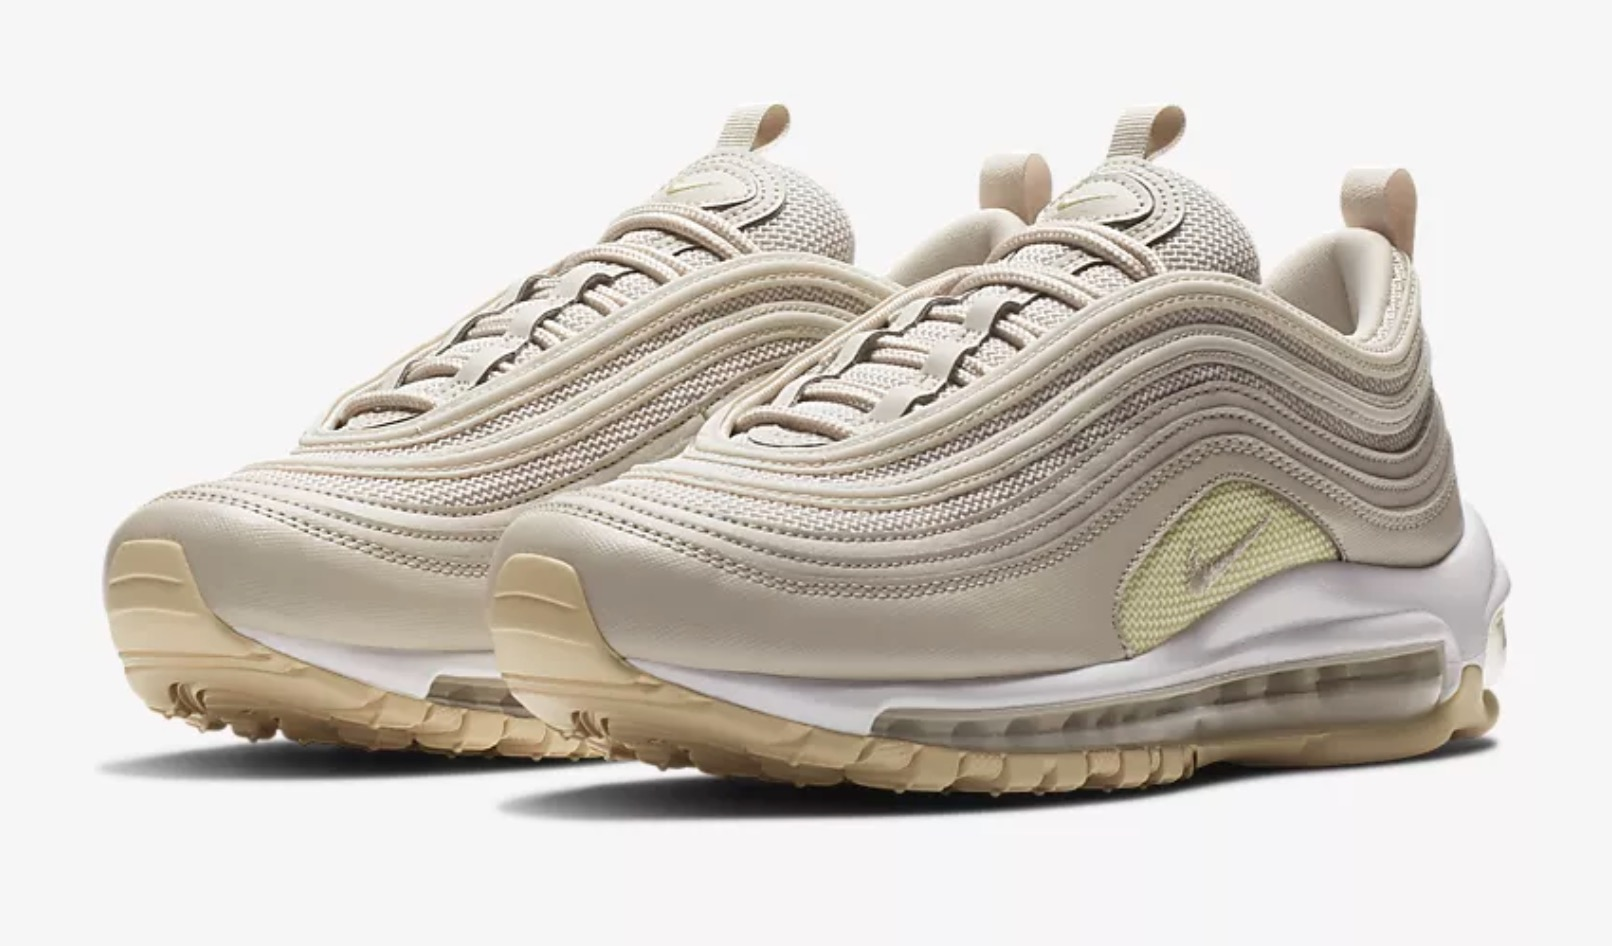 best website be16c 5763d ... real nikes air max 97 gets a desert sand beach makeover closer look  f5159 0f42c ...